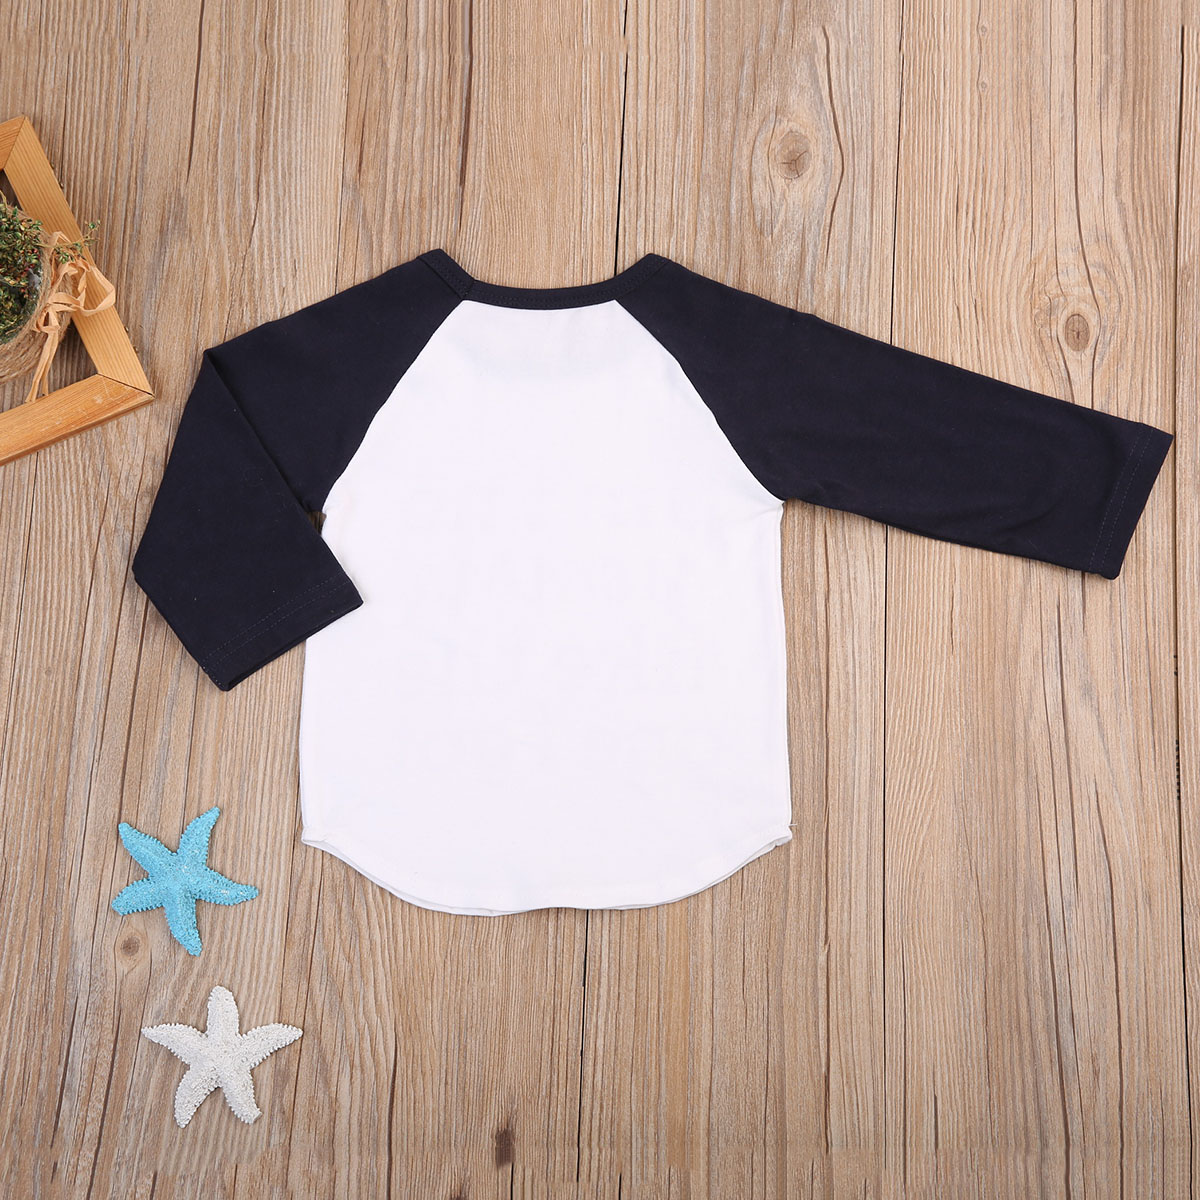 New-Fashion-T-shirts-Newborn-Infant-Kids-Baby-Boy-Tops-Cotton-Long-Sleeve-Letter-Print-Infant-Boys-Loose-Clothes-T-shirt-Tops-2